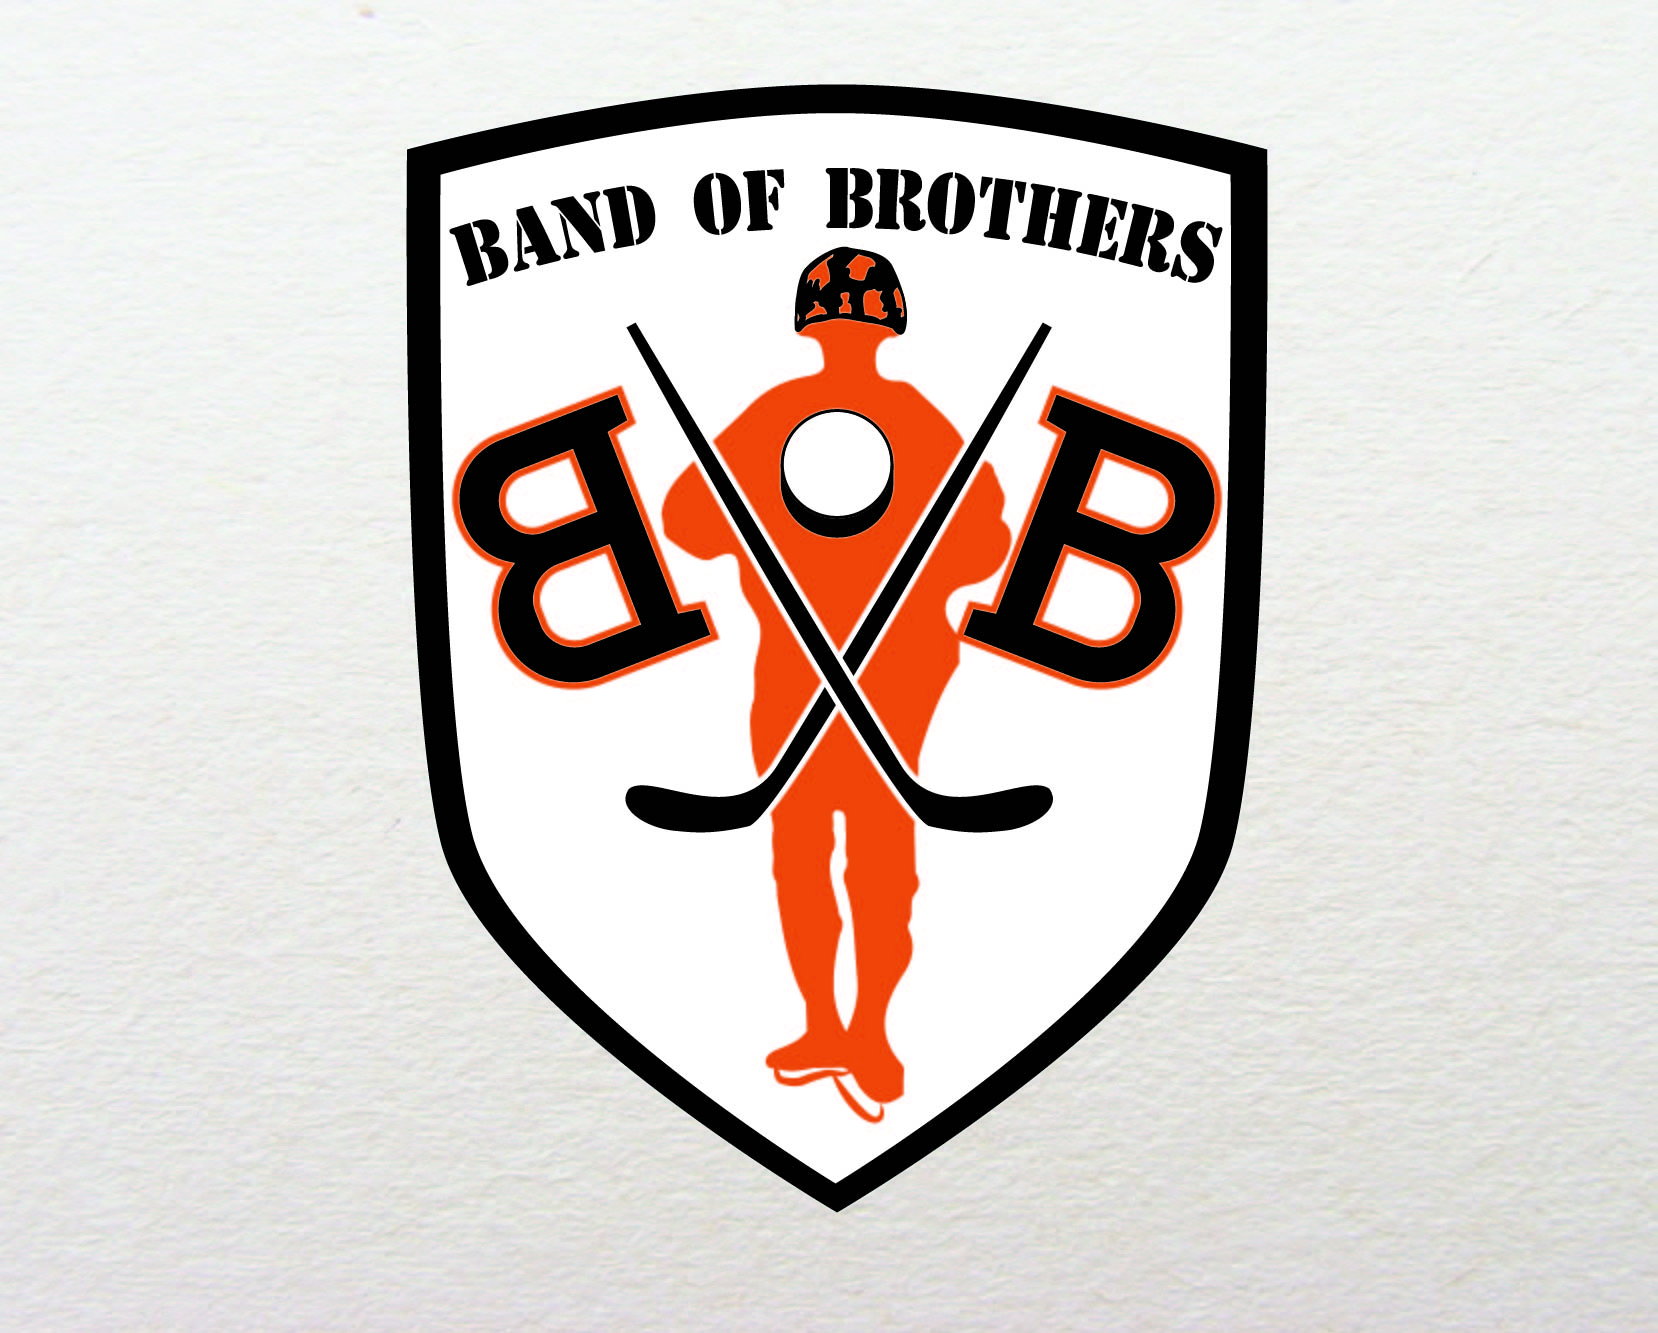 Logo Design by iwyn - Entry No. 40 in the Logo Design Contest Inspiring Logo Design for Band of Brothers.